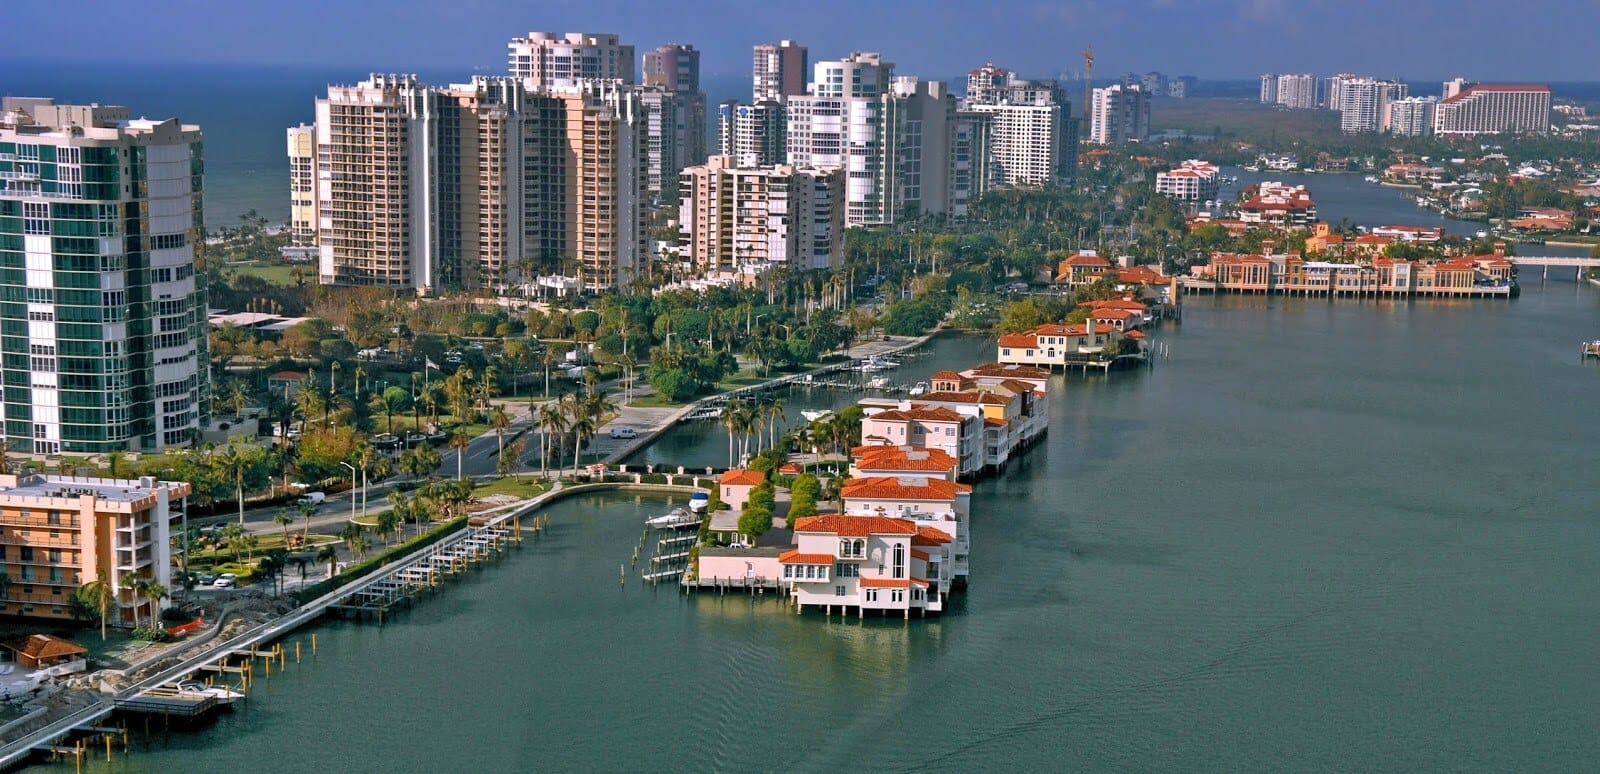 Best cities near Miami to visit